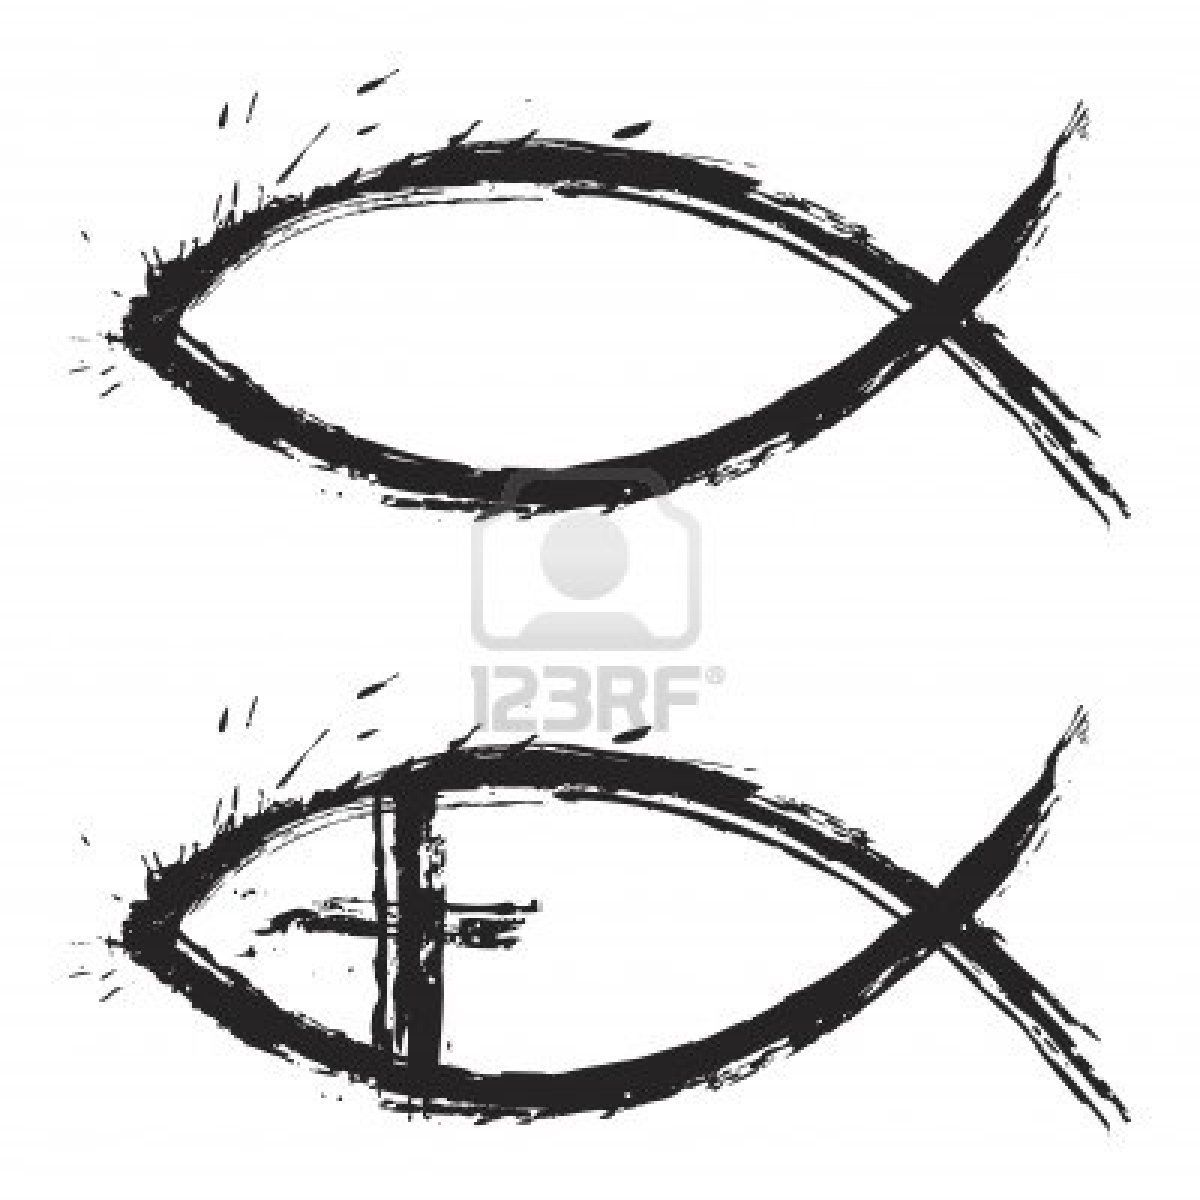 Christian religion symbol fish created in grunge style stock photo christian religion symbol fish created in grunge style stock photo 10129405 biocorpaavc Images